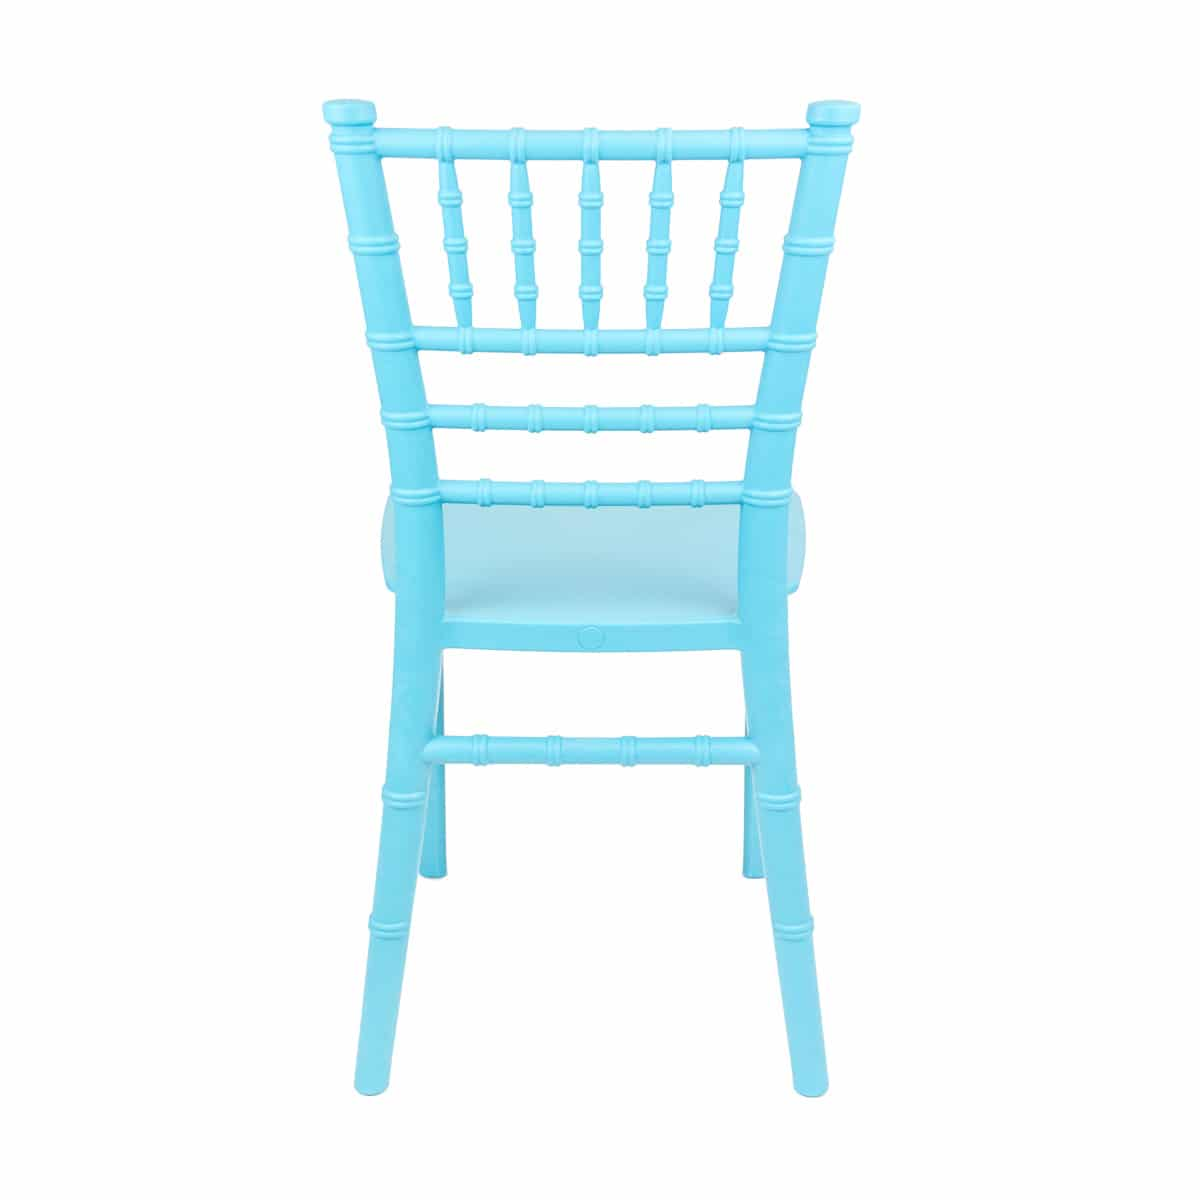 Tiffany Blue Chair Child Size Tiffany Chair The Classic Chiavari Chair For Kids